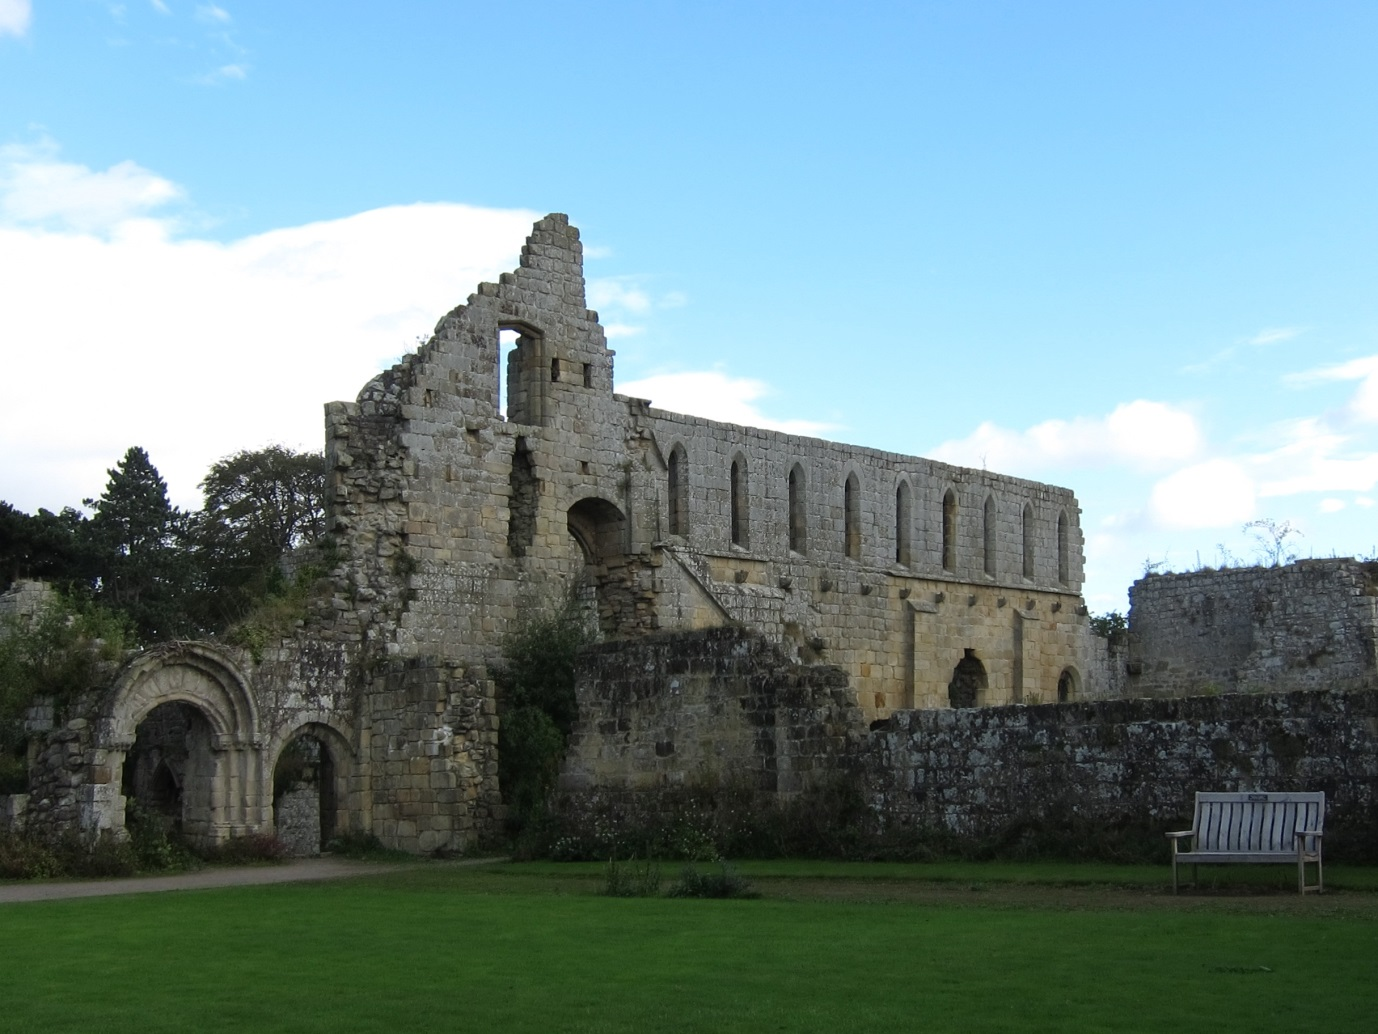 Ruins-of-Cistercian-Abbey-of-Jervaulx-Yorkshire